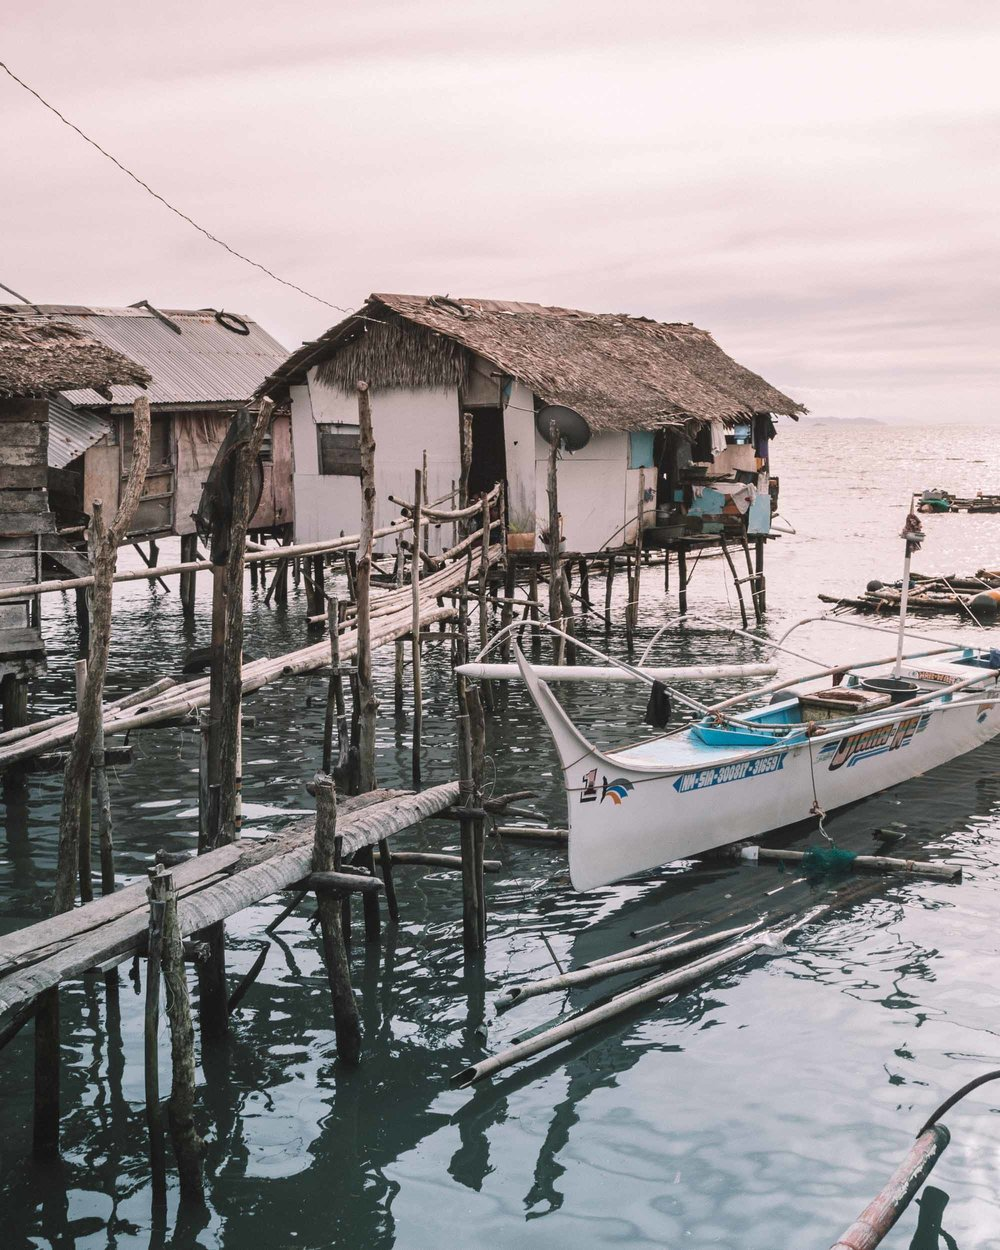 Siargao living the ultimate island life Philippines tropical destination palm tree beach beautiful places travel guide santa monica pier sunset fishing village